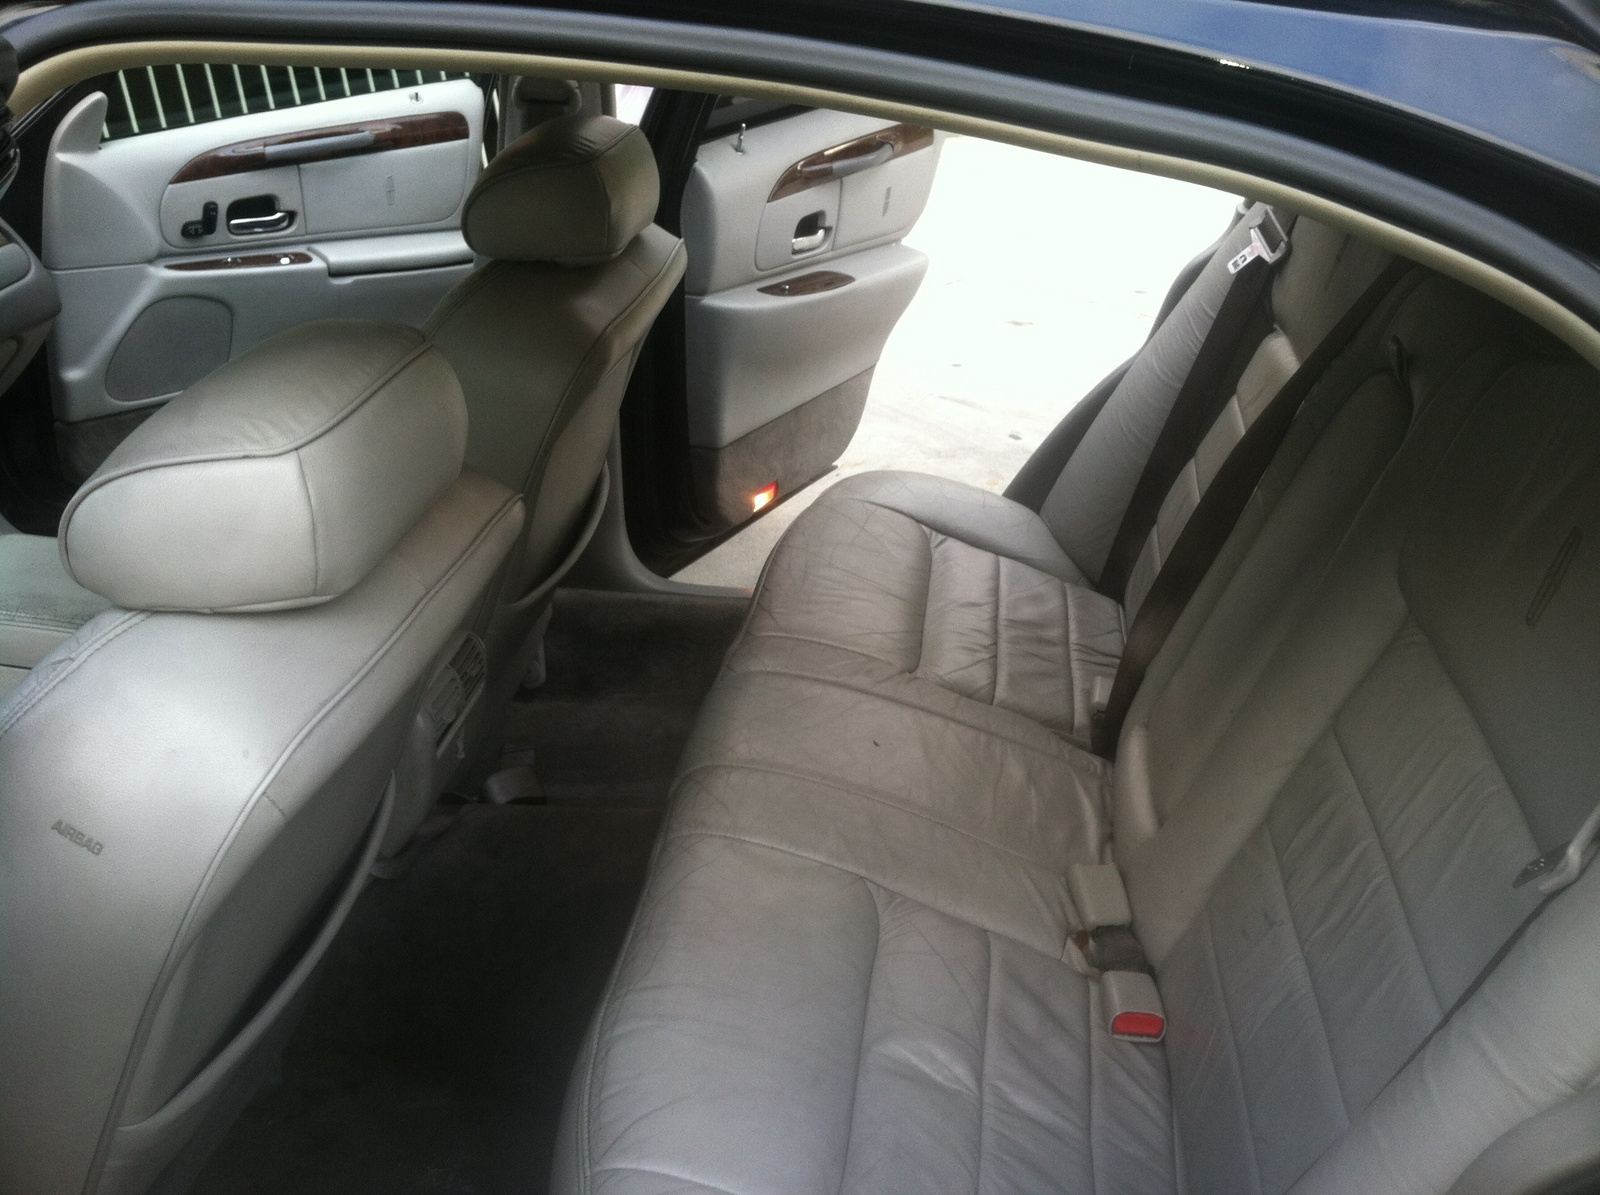 2000 lincoln town car pictures cargurus. Black Bedroom Furniture Sets. Home Design Ideas